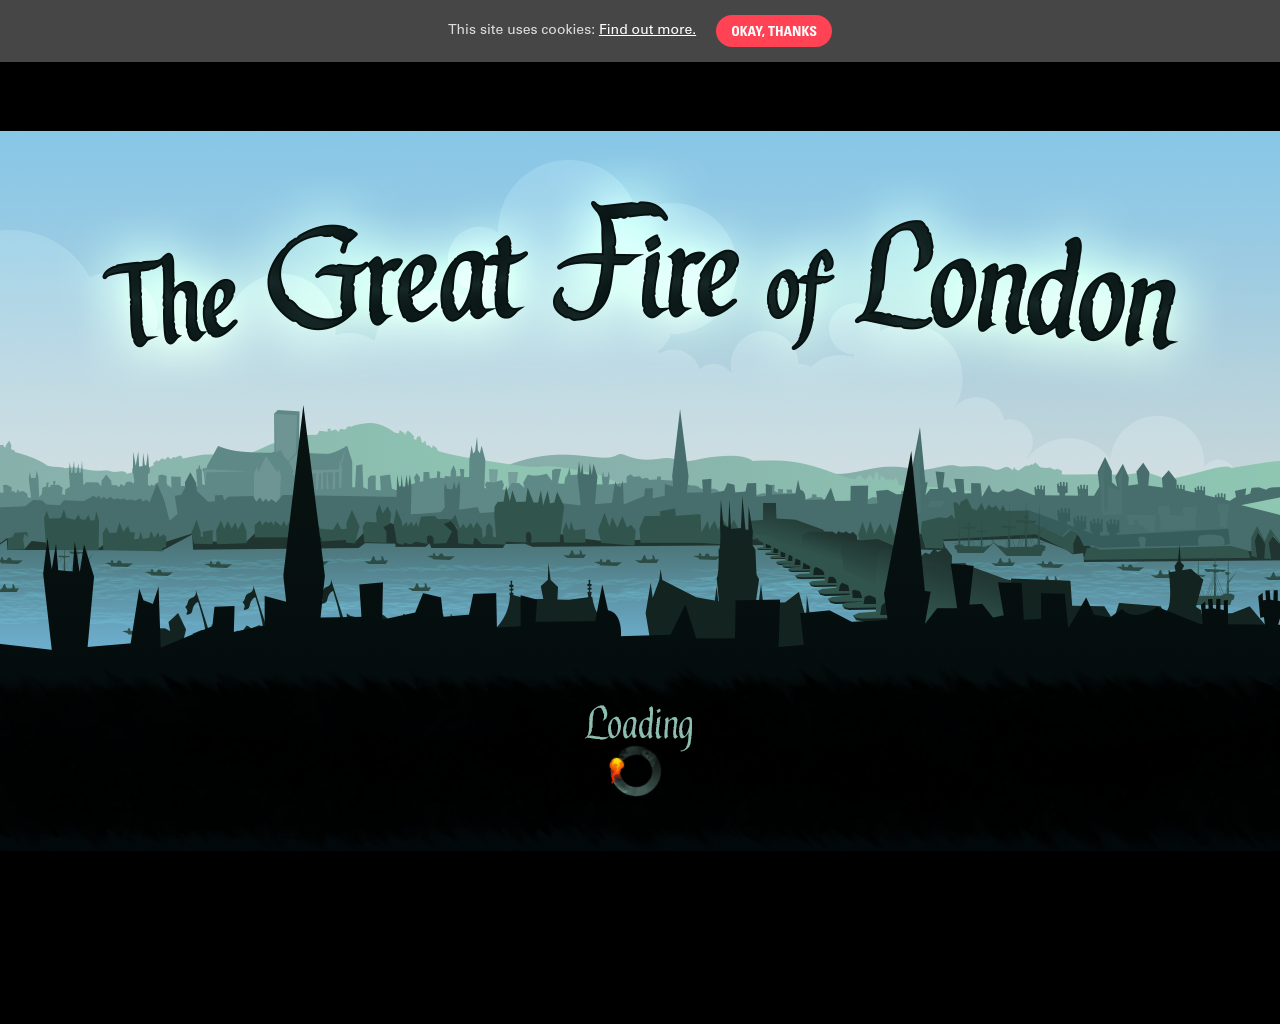 Great Fire of London: Play the Game